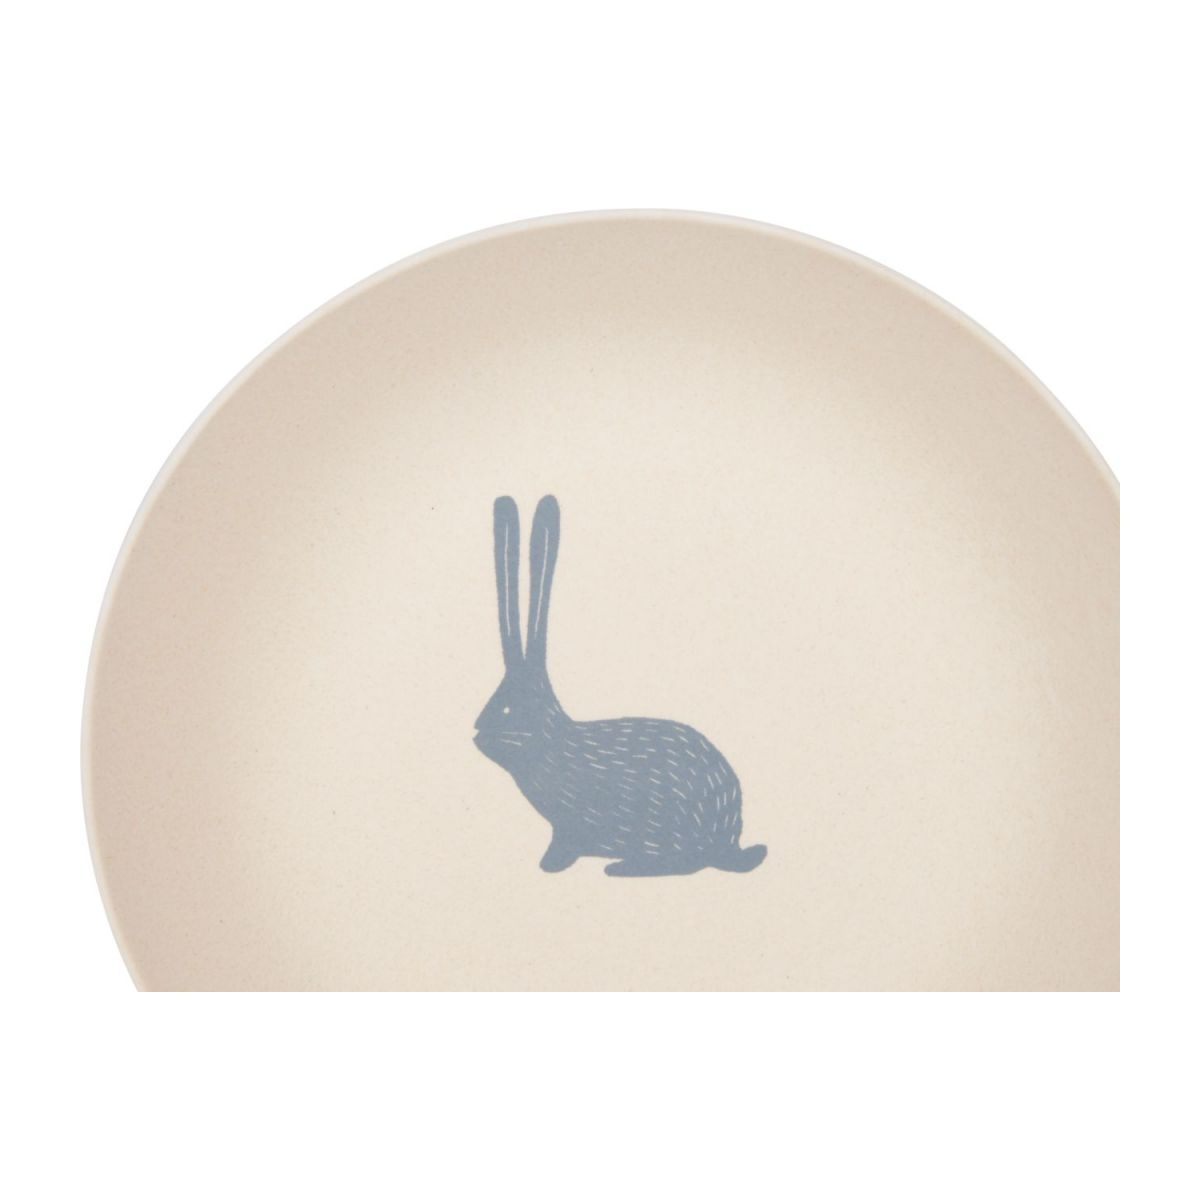 Soup plate with bunny patterns n°3